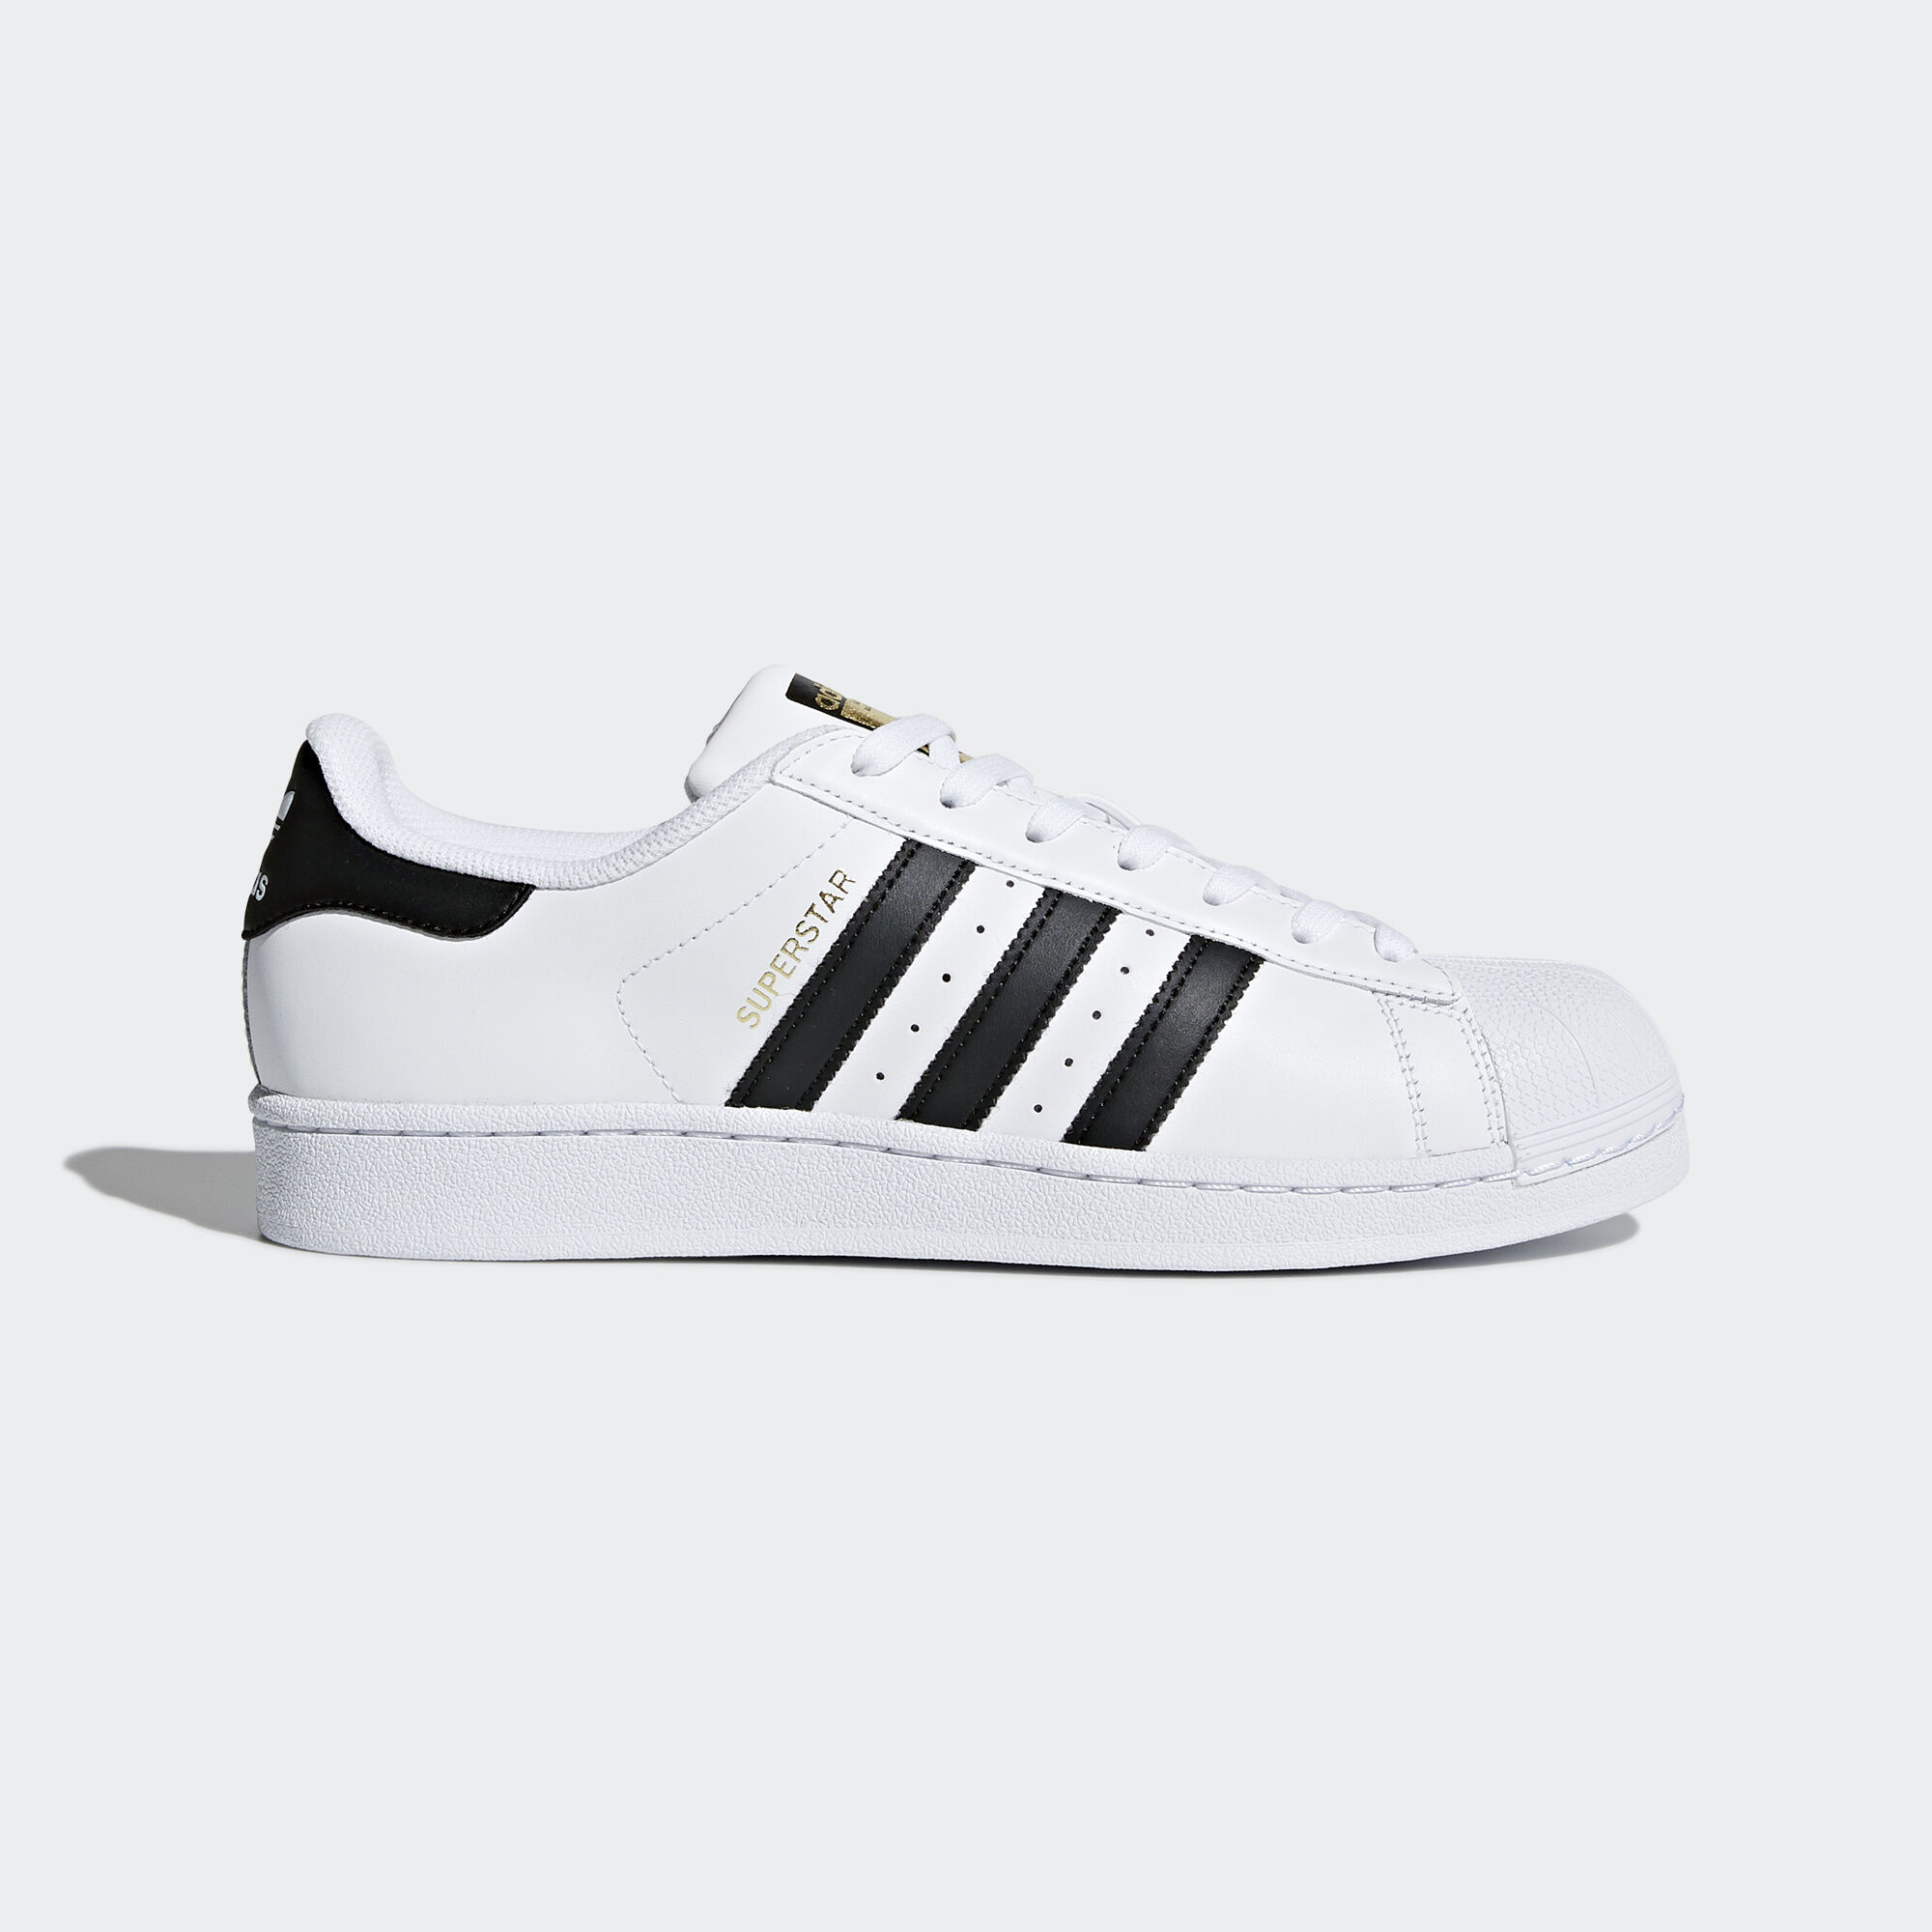 adidas - Superstar Shoes Running White / Core Black / Running White C77124